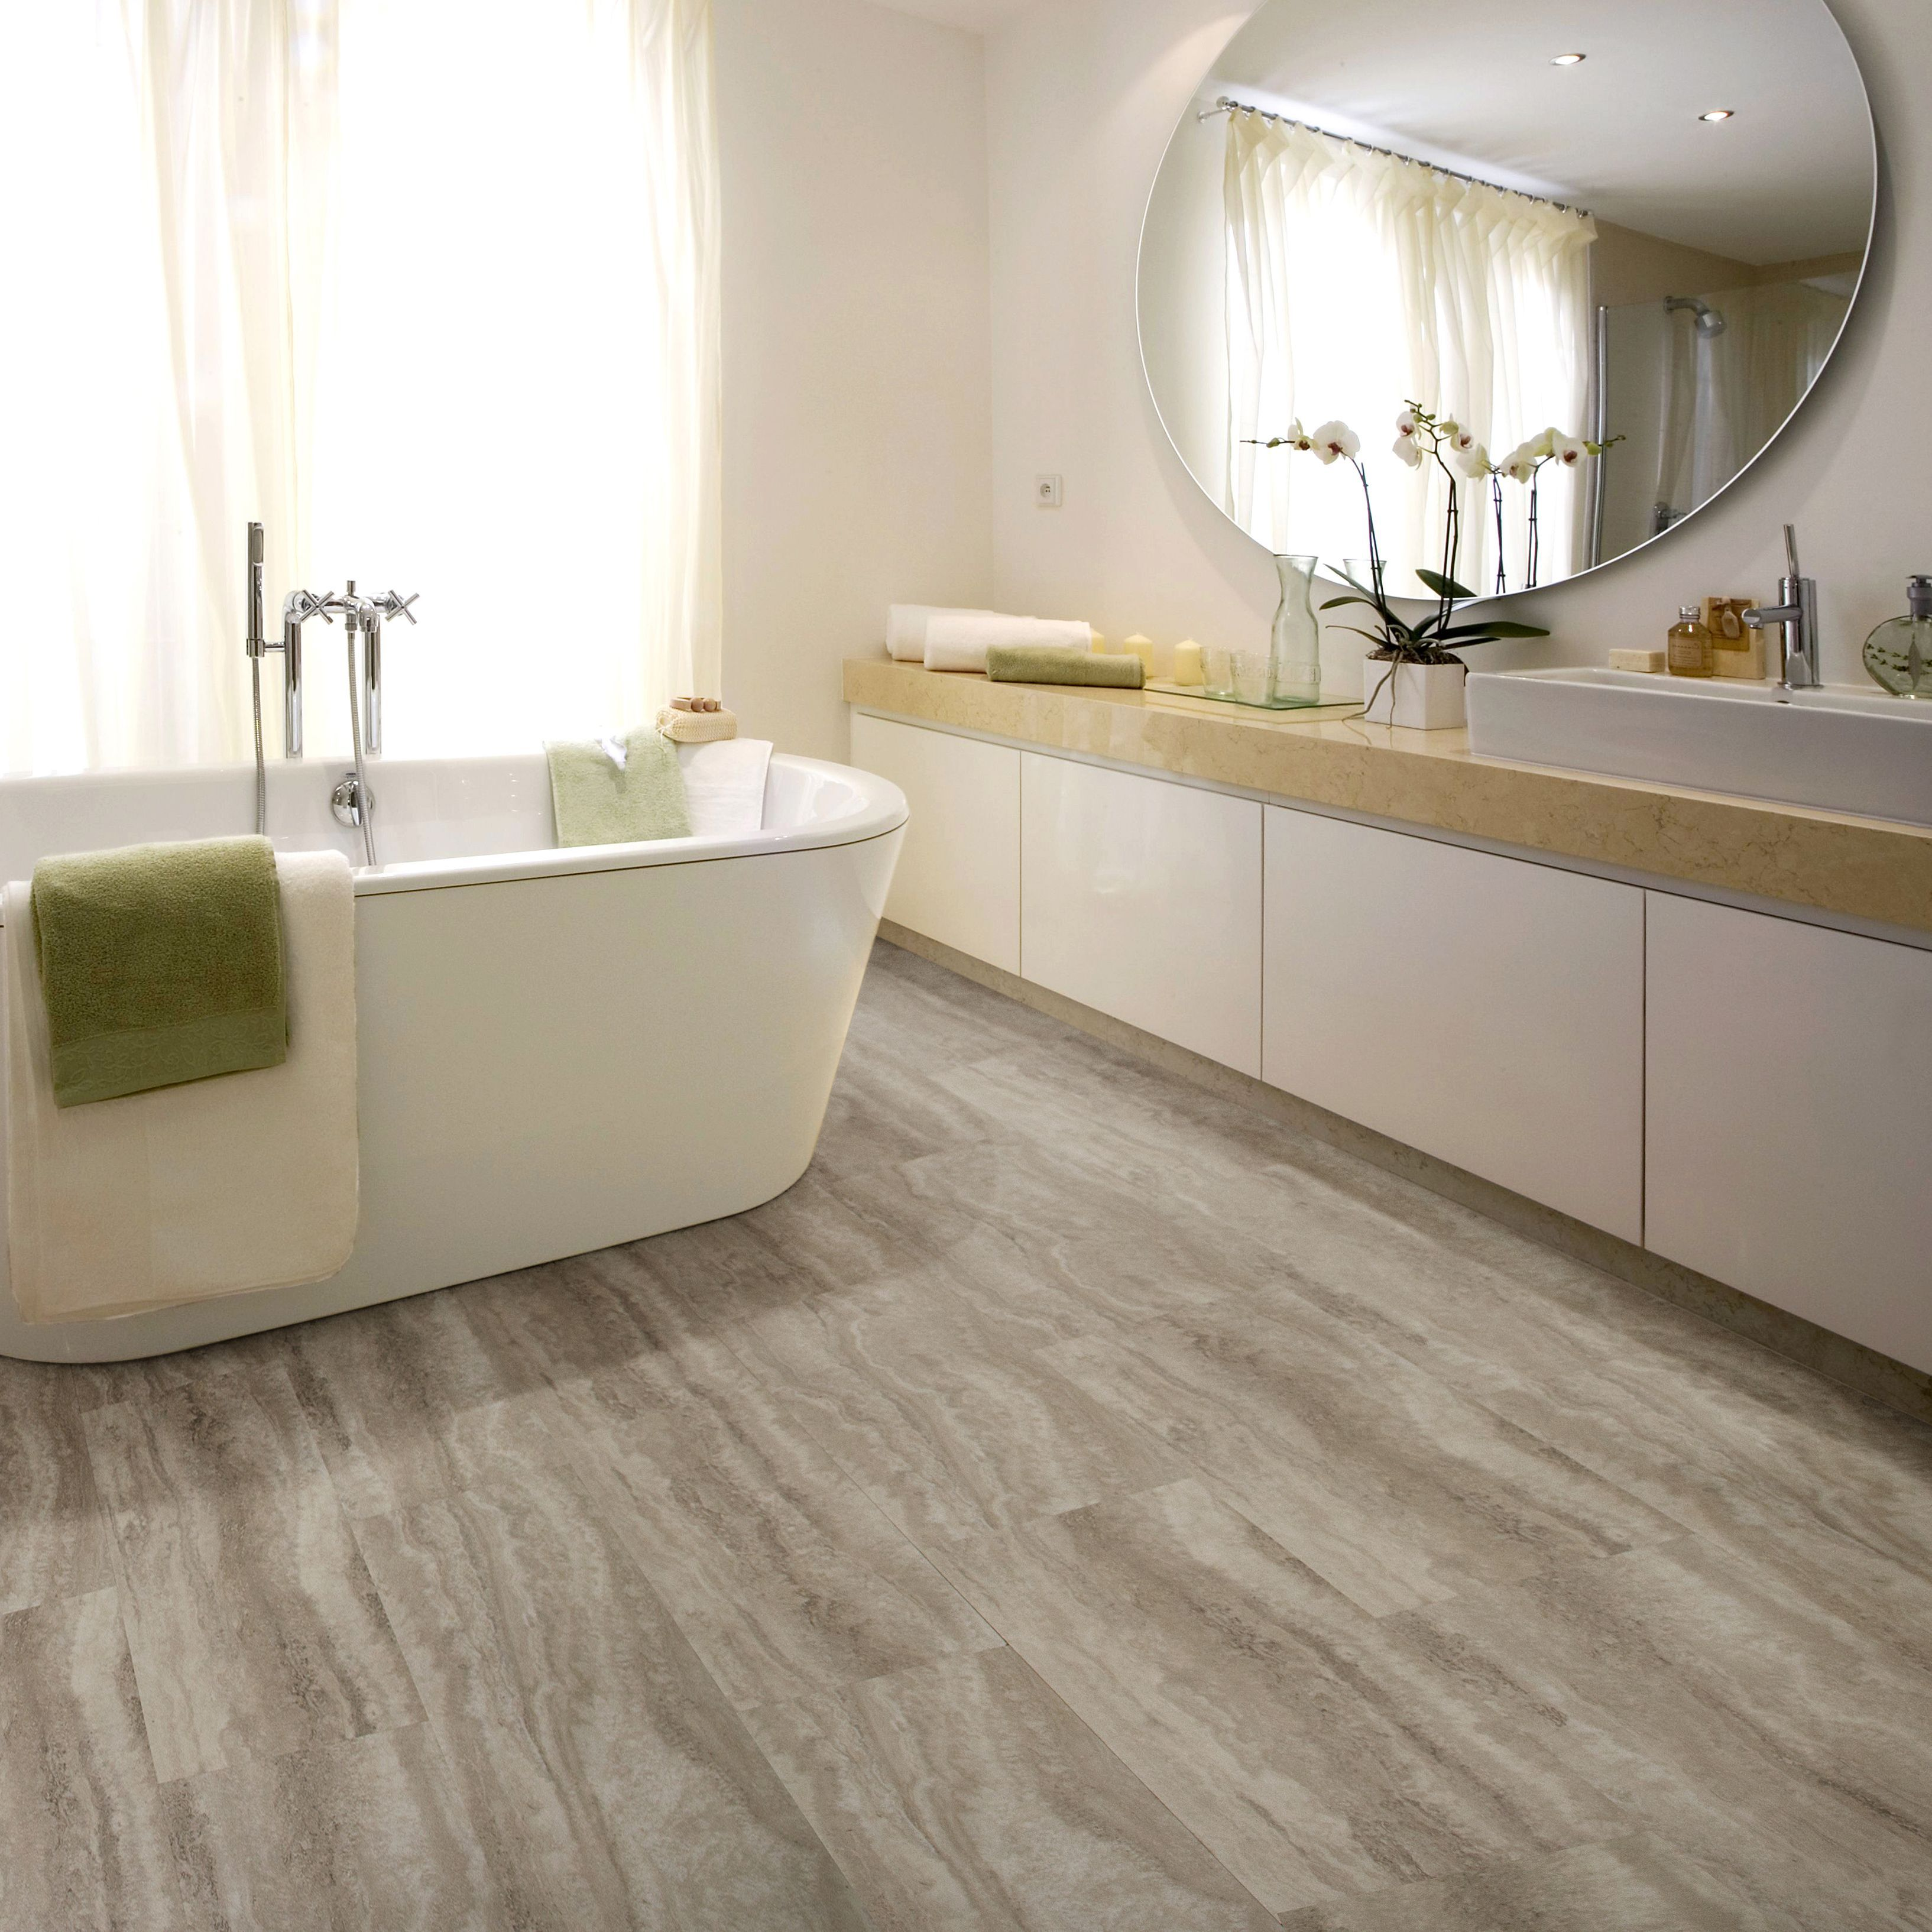 Sand Effect Waterproof Luxury Vinyl Click Flooring Pack 2